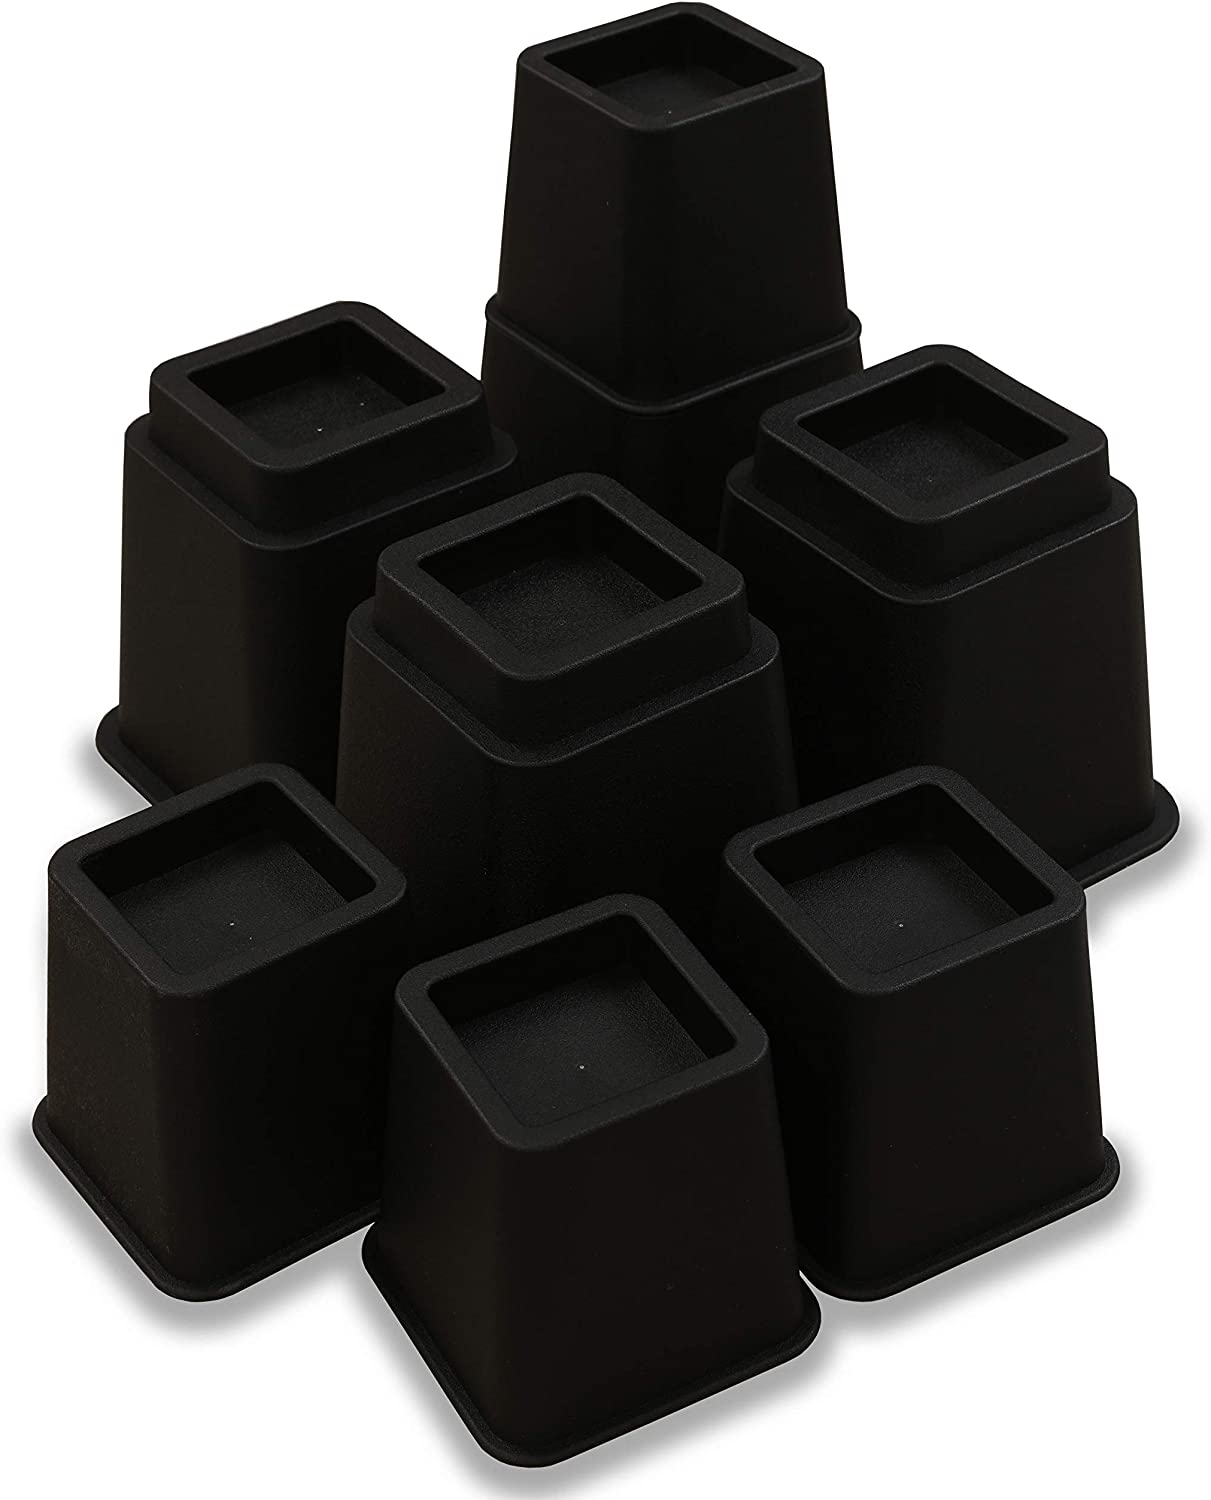 ZOYER Furniture Risers (Black, 8 Pieces Set,) - Heavy Duty Bed Risers Supports up to 1300 lbs - Adjustable 3, 5 or 8 Inch Bed Riser, Table Risers, Chair Risers, Sofa Risers & Desk Risers.